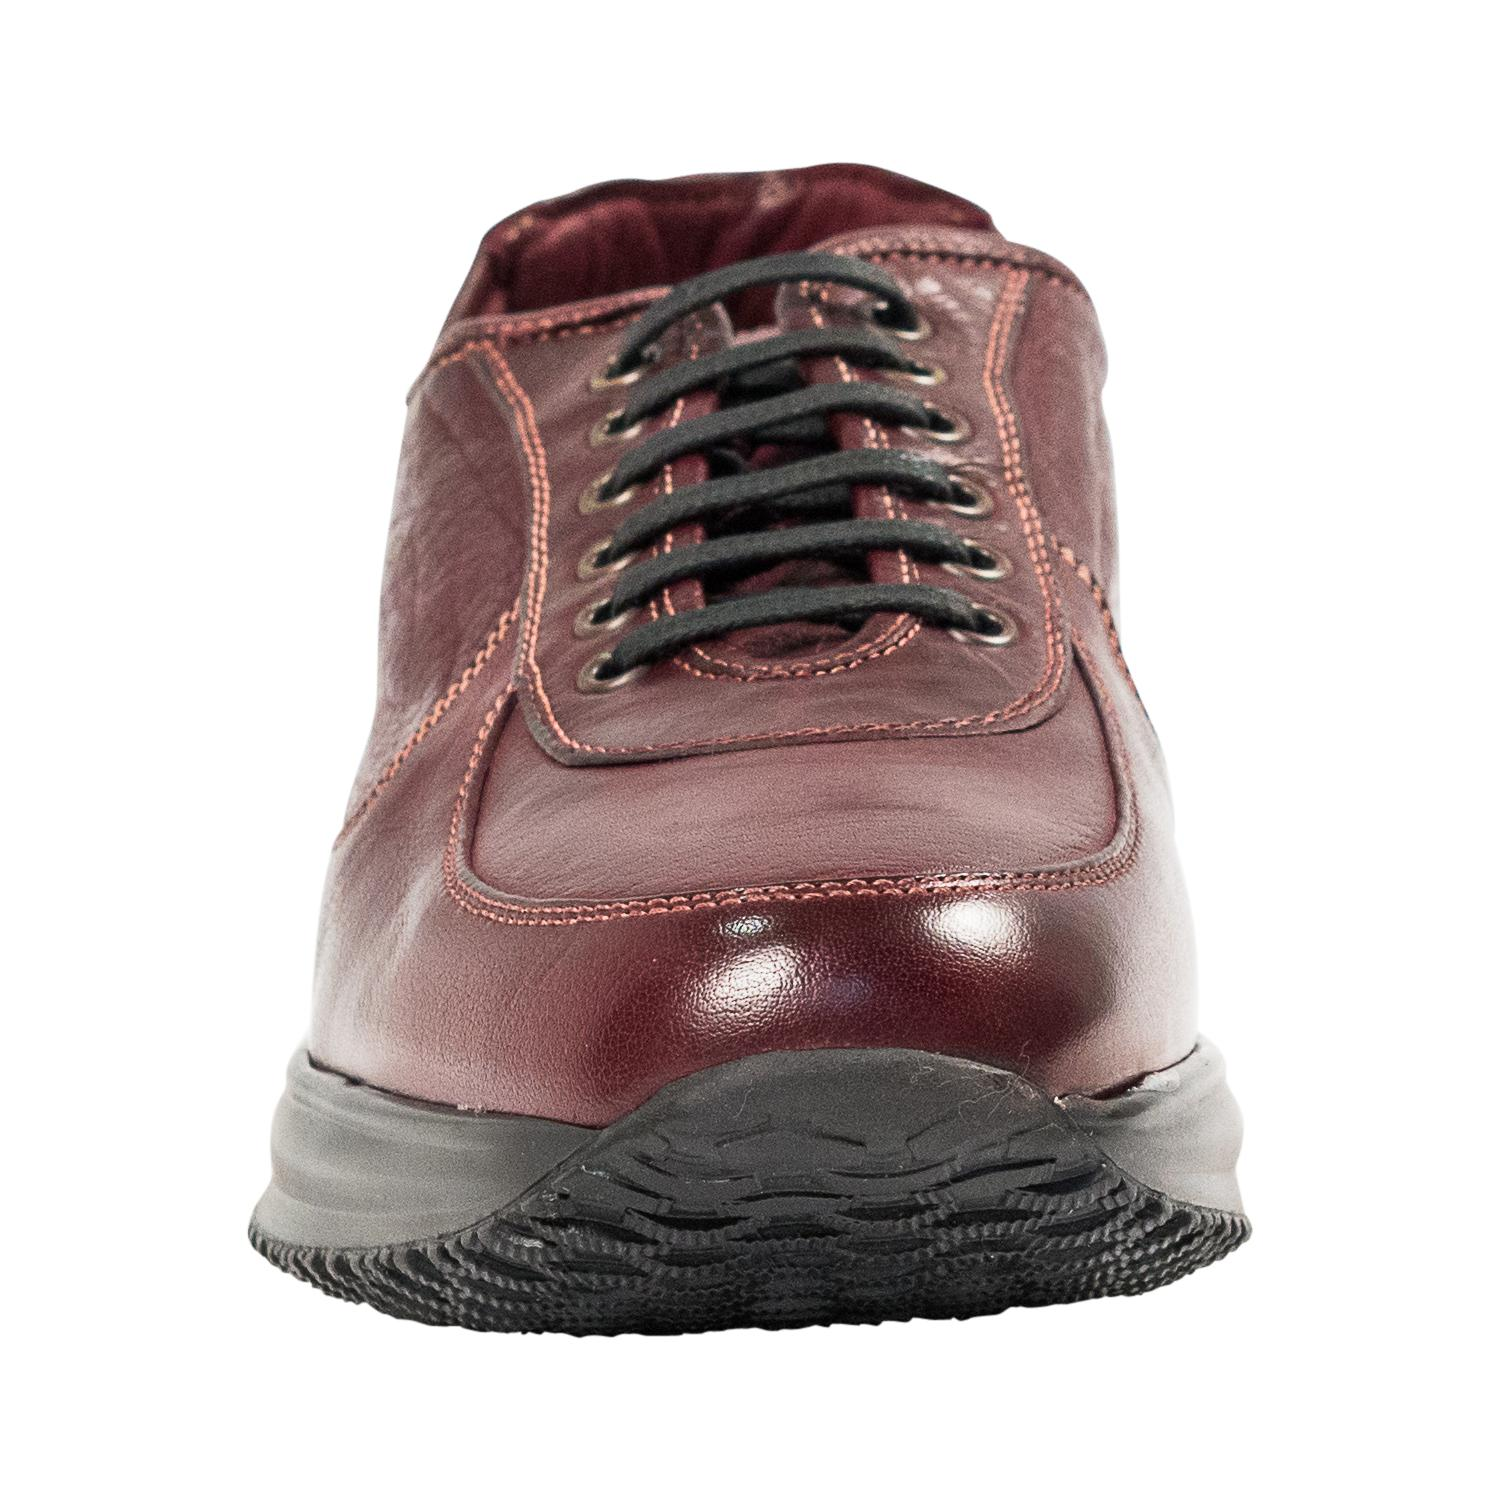 Maximo Oxblood Red Nappa Leather Thick Rubber Sole